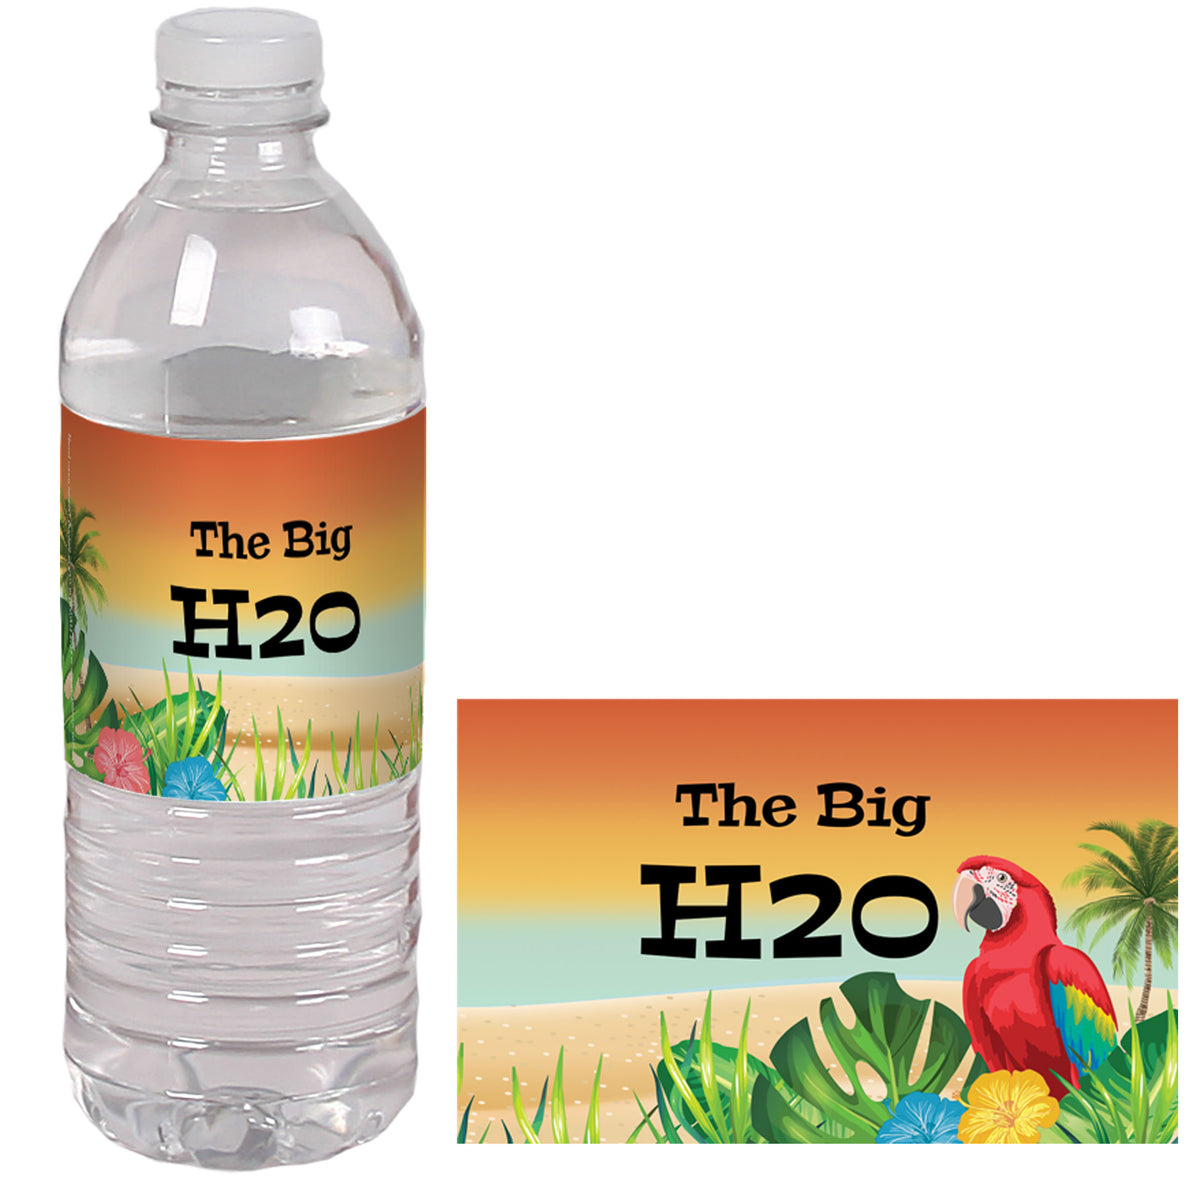 It's Tiki Time Personalized Water Bottle Label